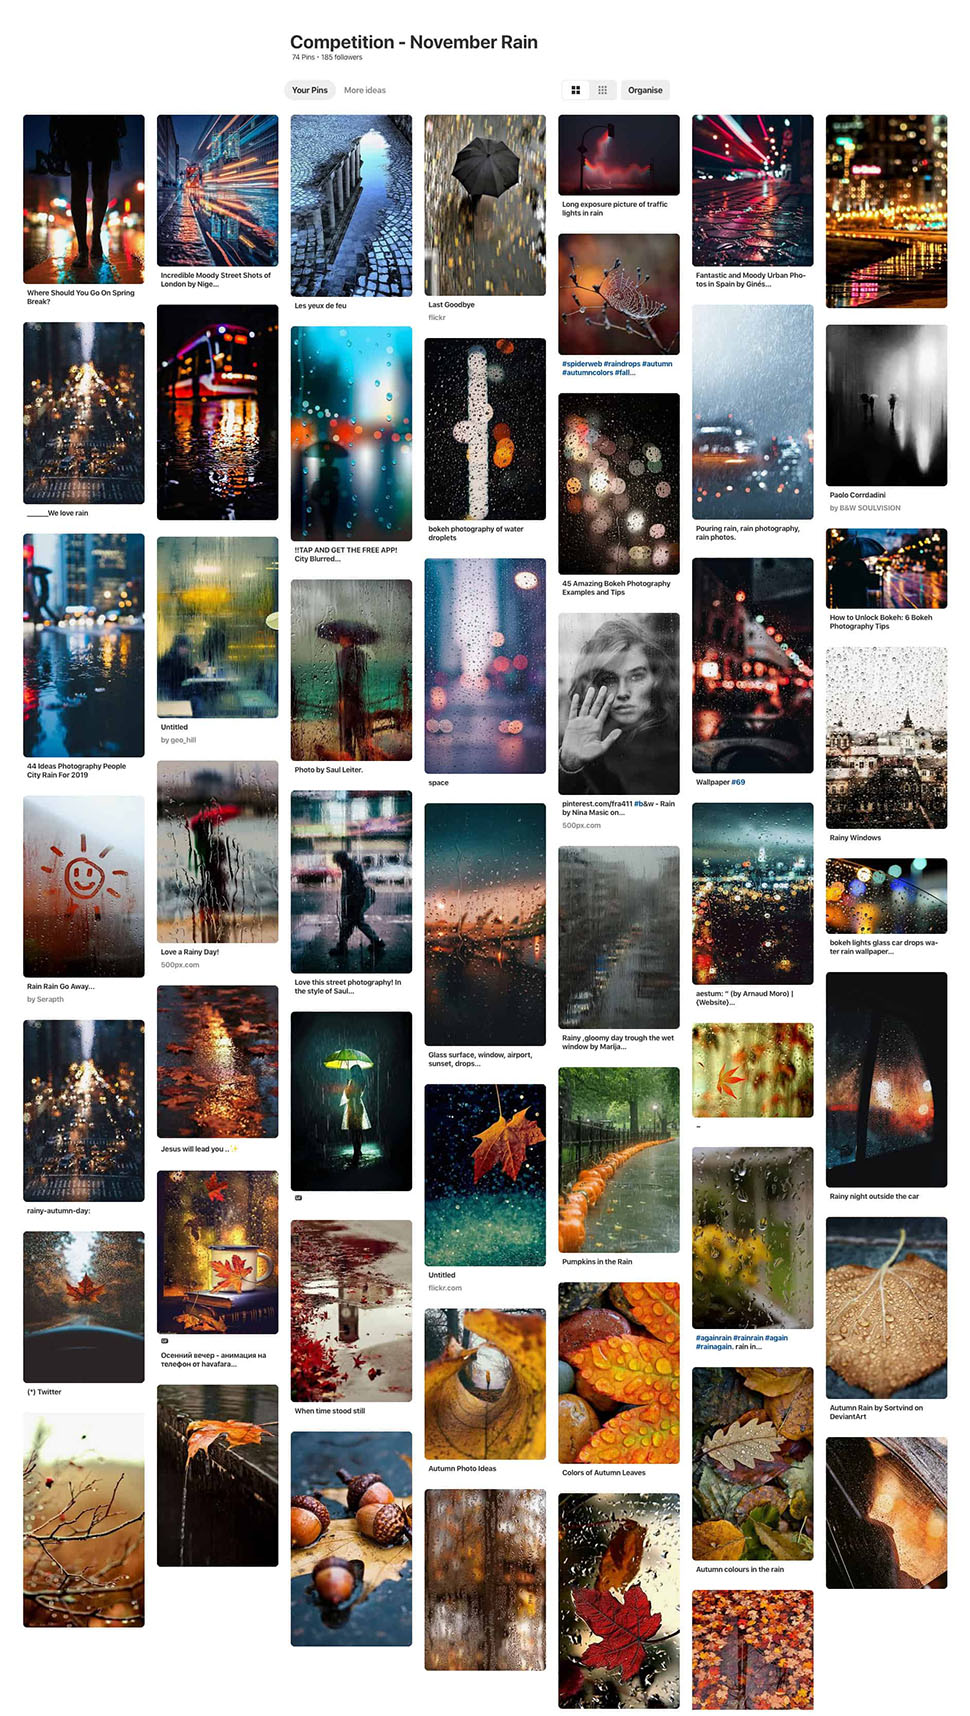 November rain photography competition Pinterest